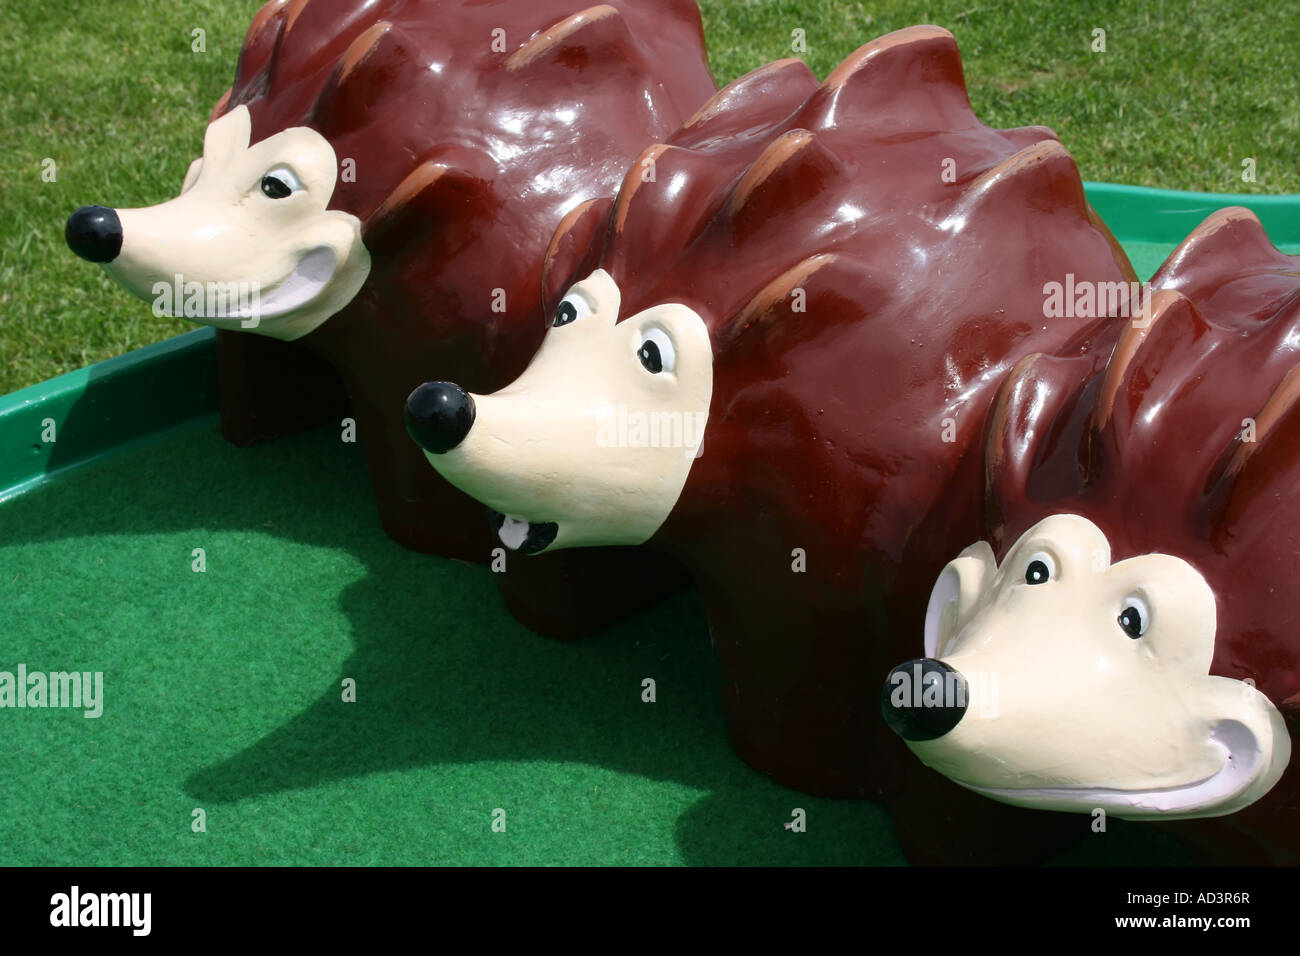 Model of three cute hedgehogs on crazy golf course at Pendine, Carmarthenshire, Wales - Stock Image